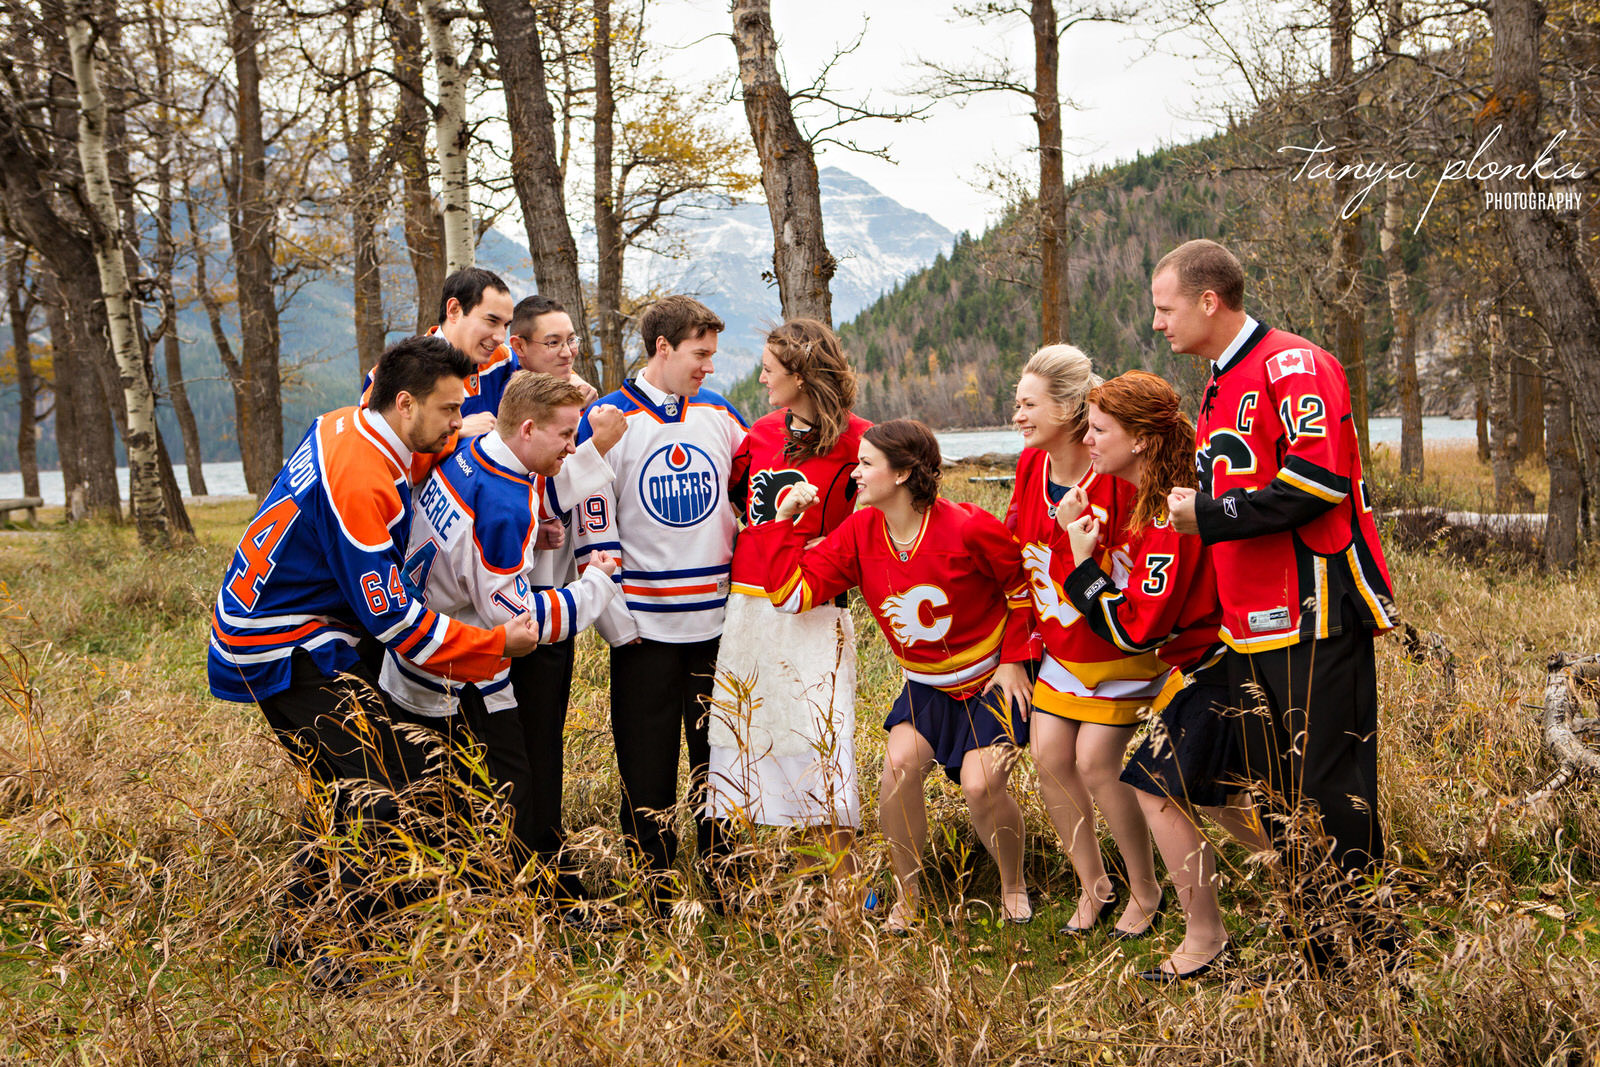 wedding party with Oilers and Calgary Flames jerseys faces off in Waterton National Park